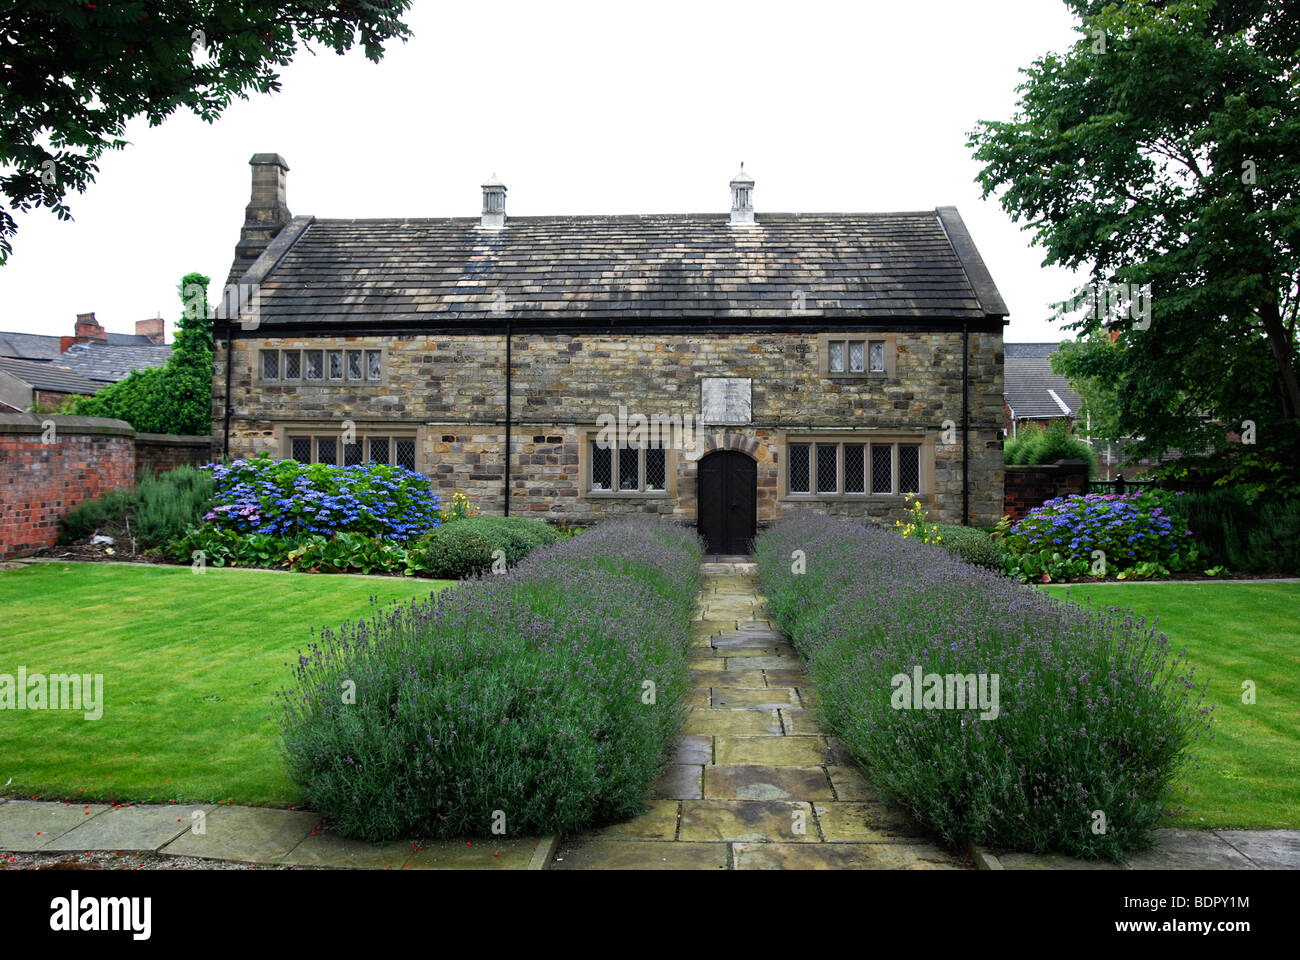 the ' society of friends ' quakers meeting house in st.helens, lancashire,uk - Stock Image